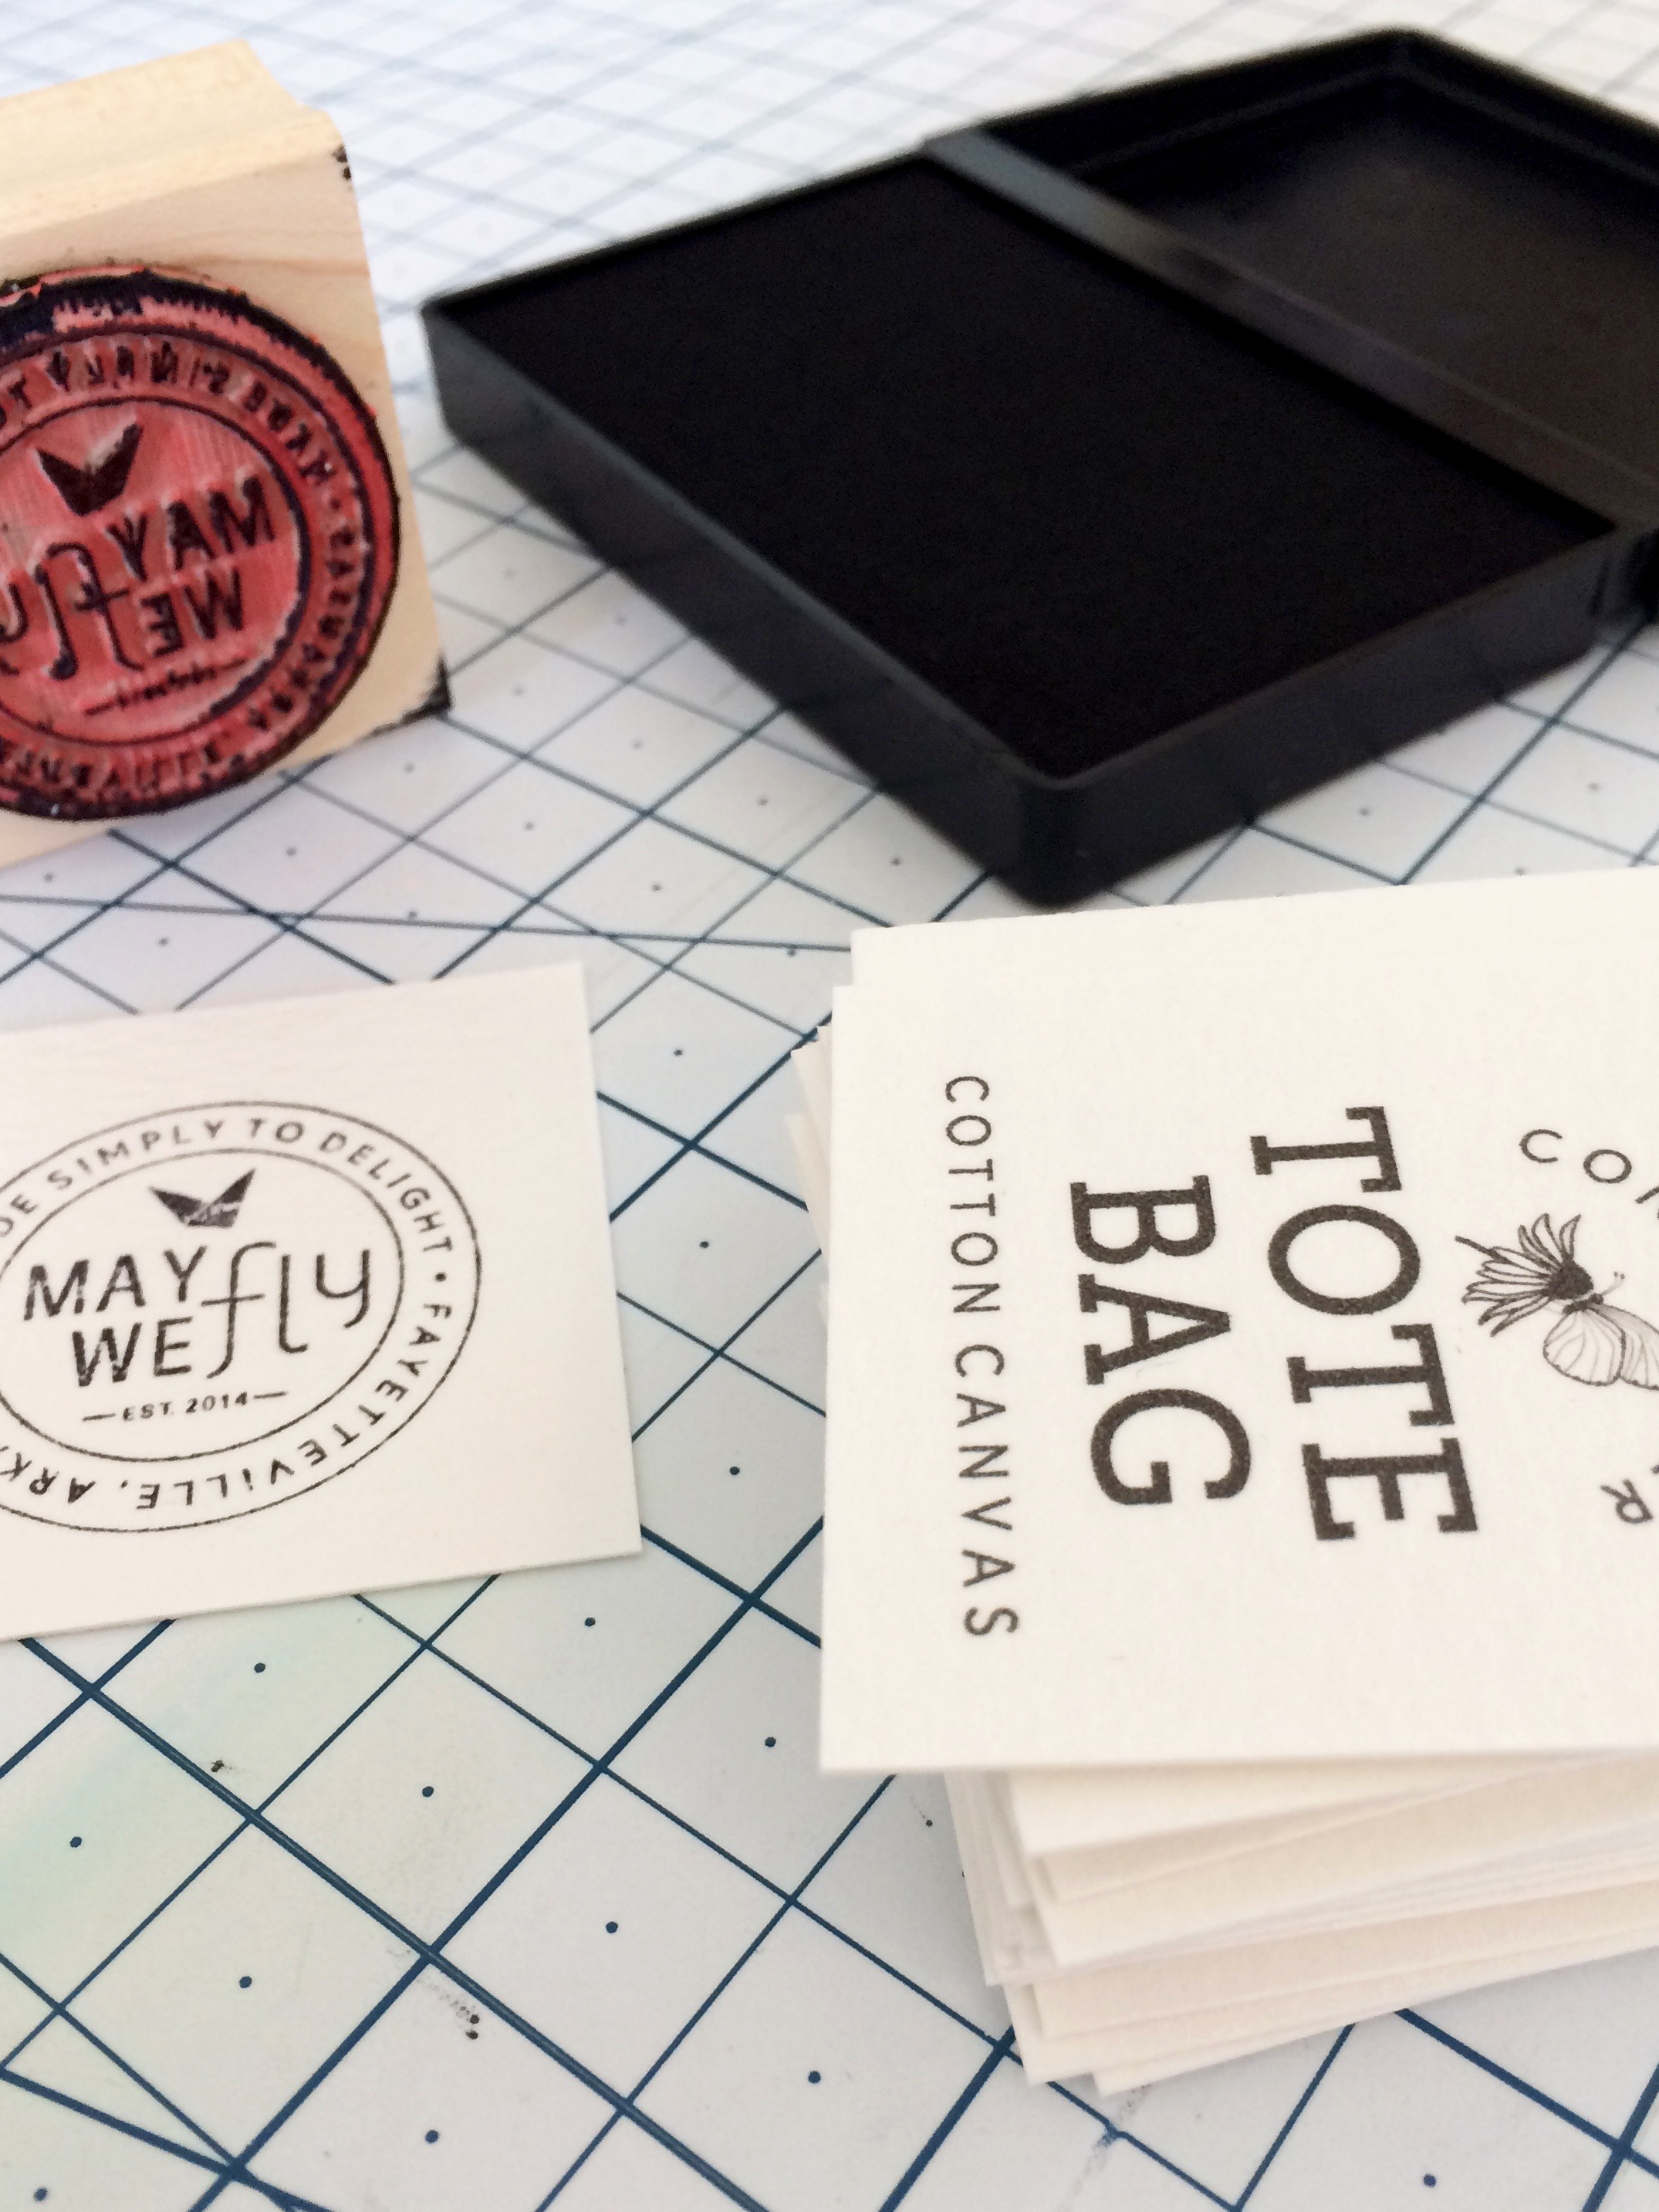 I use stamps for many of my packaging labels so I can use up my scrap paper!